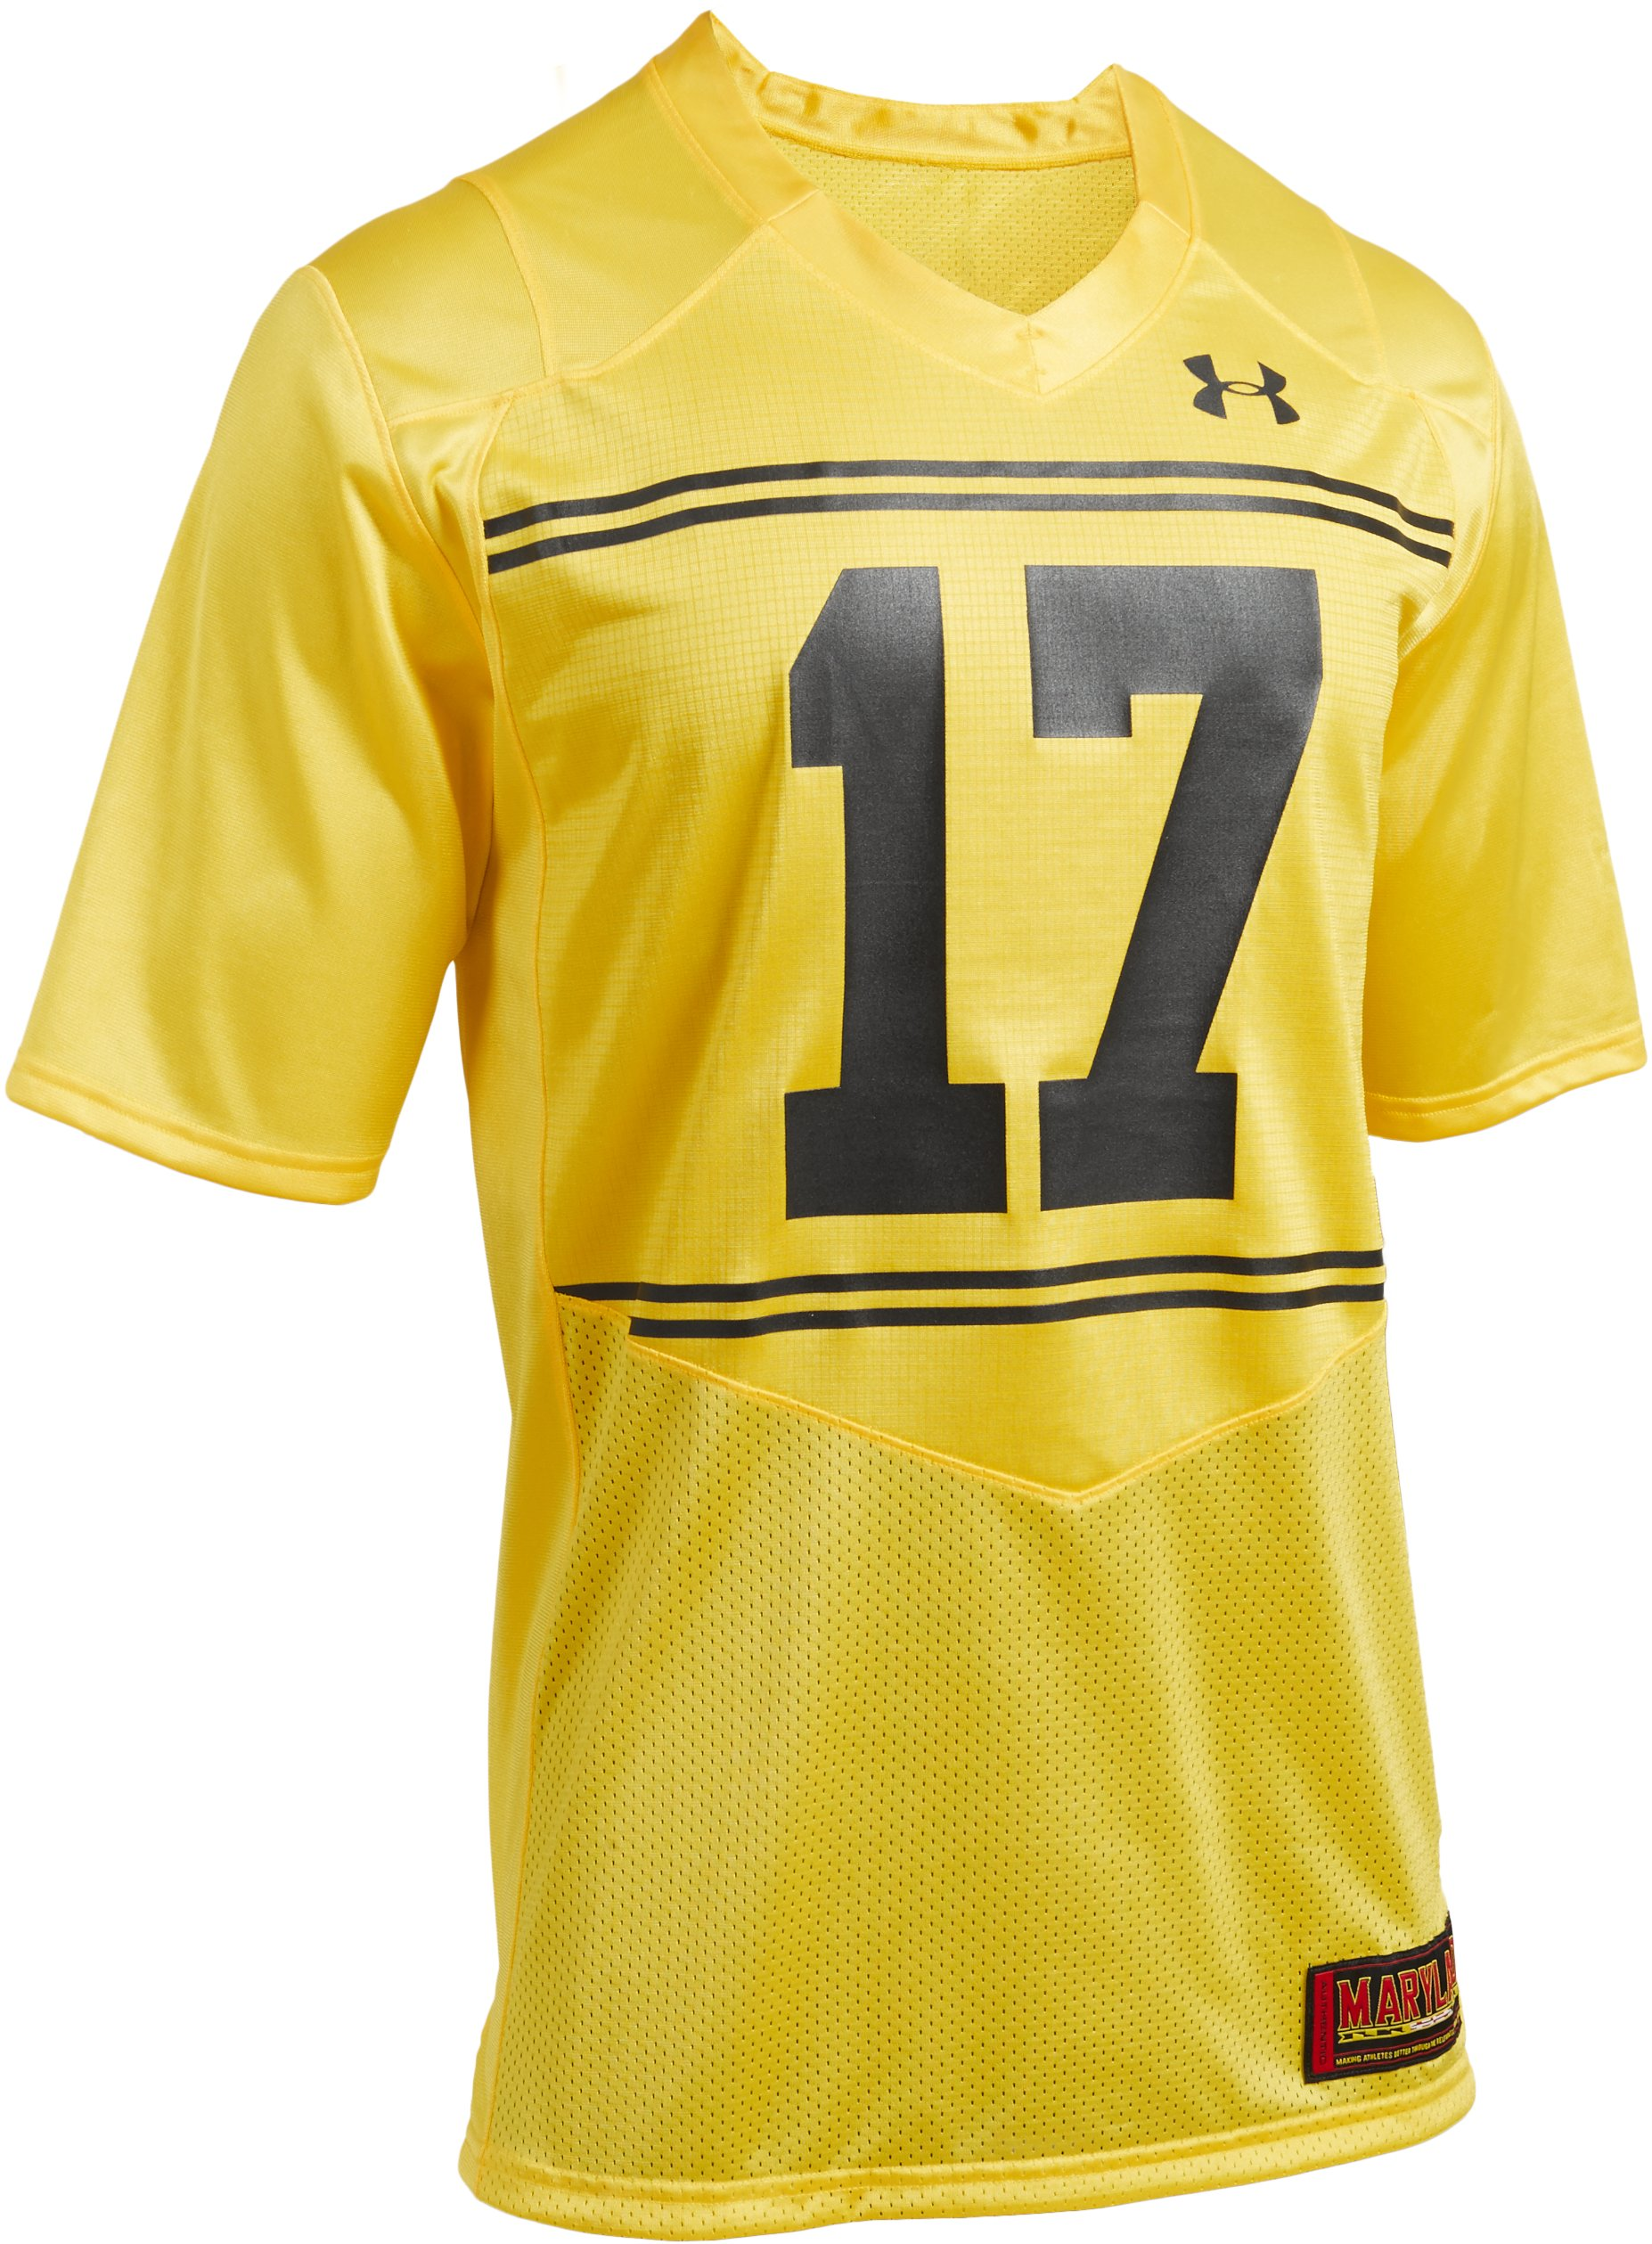 Men's Maryland Replica Jersey, Taxi